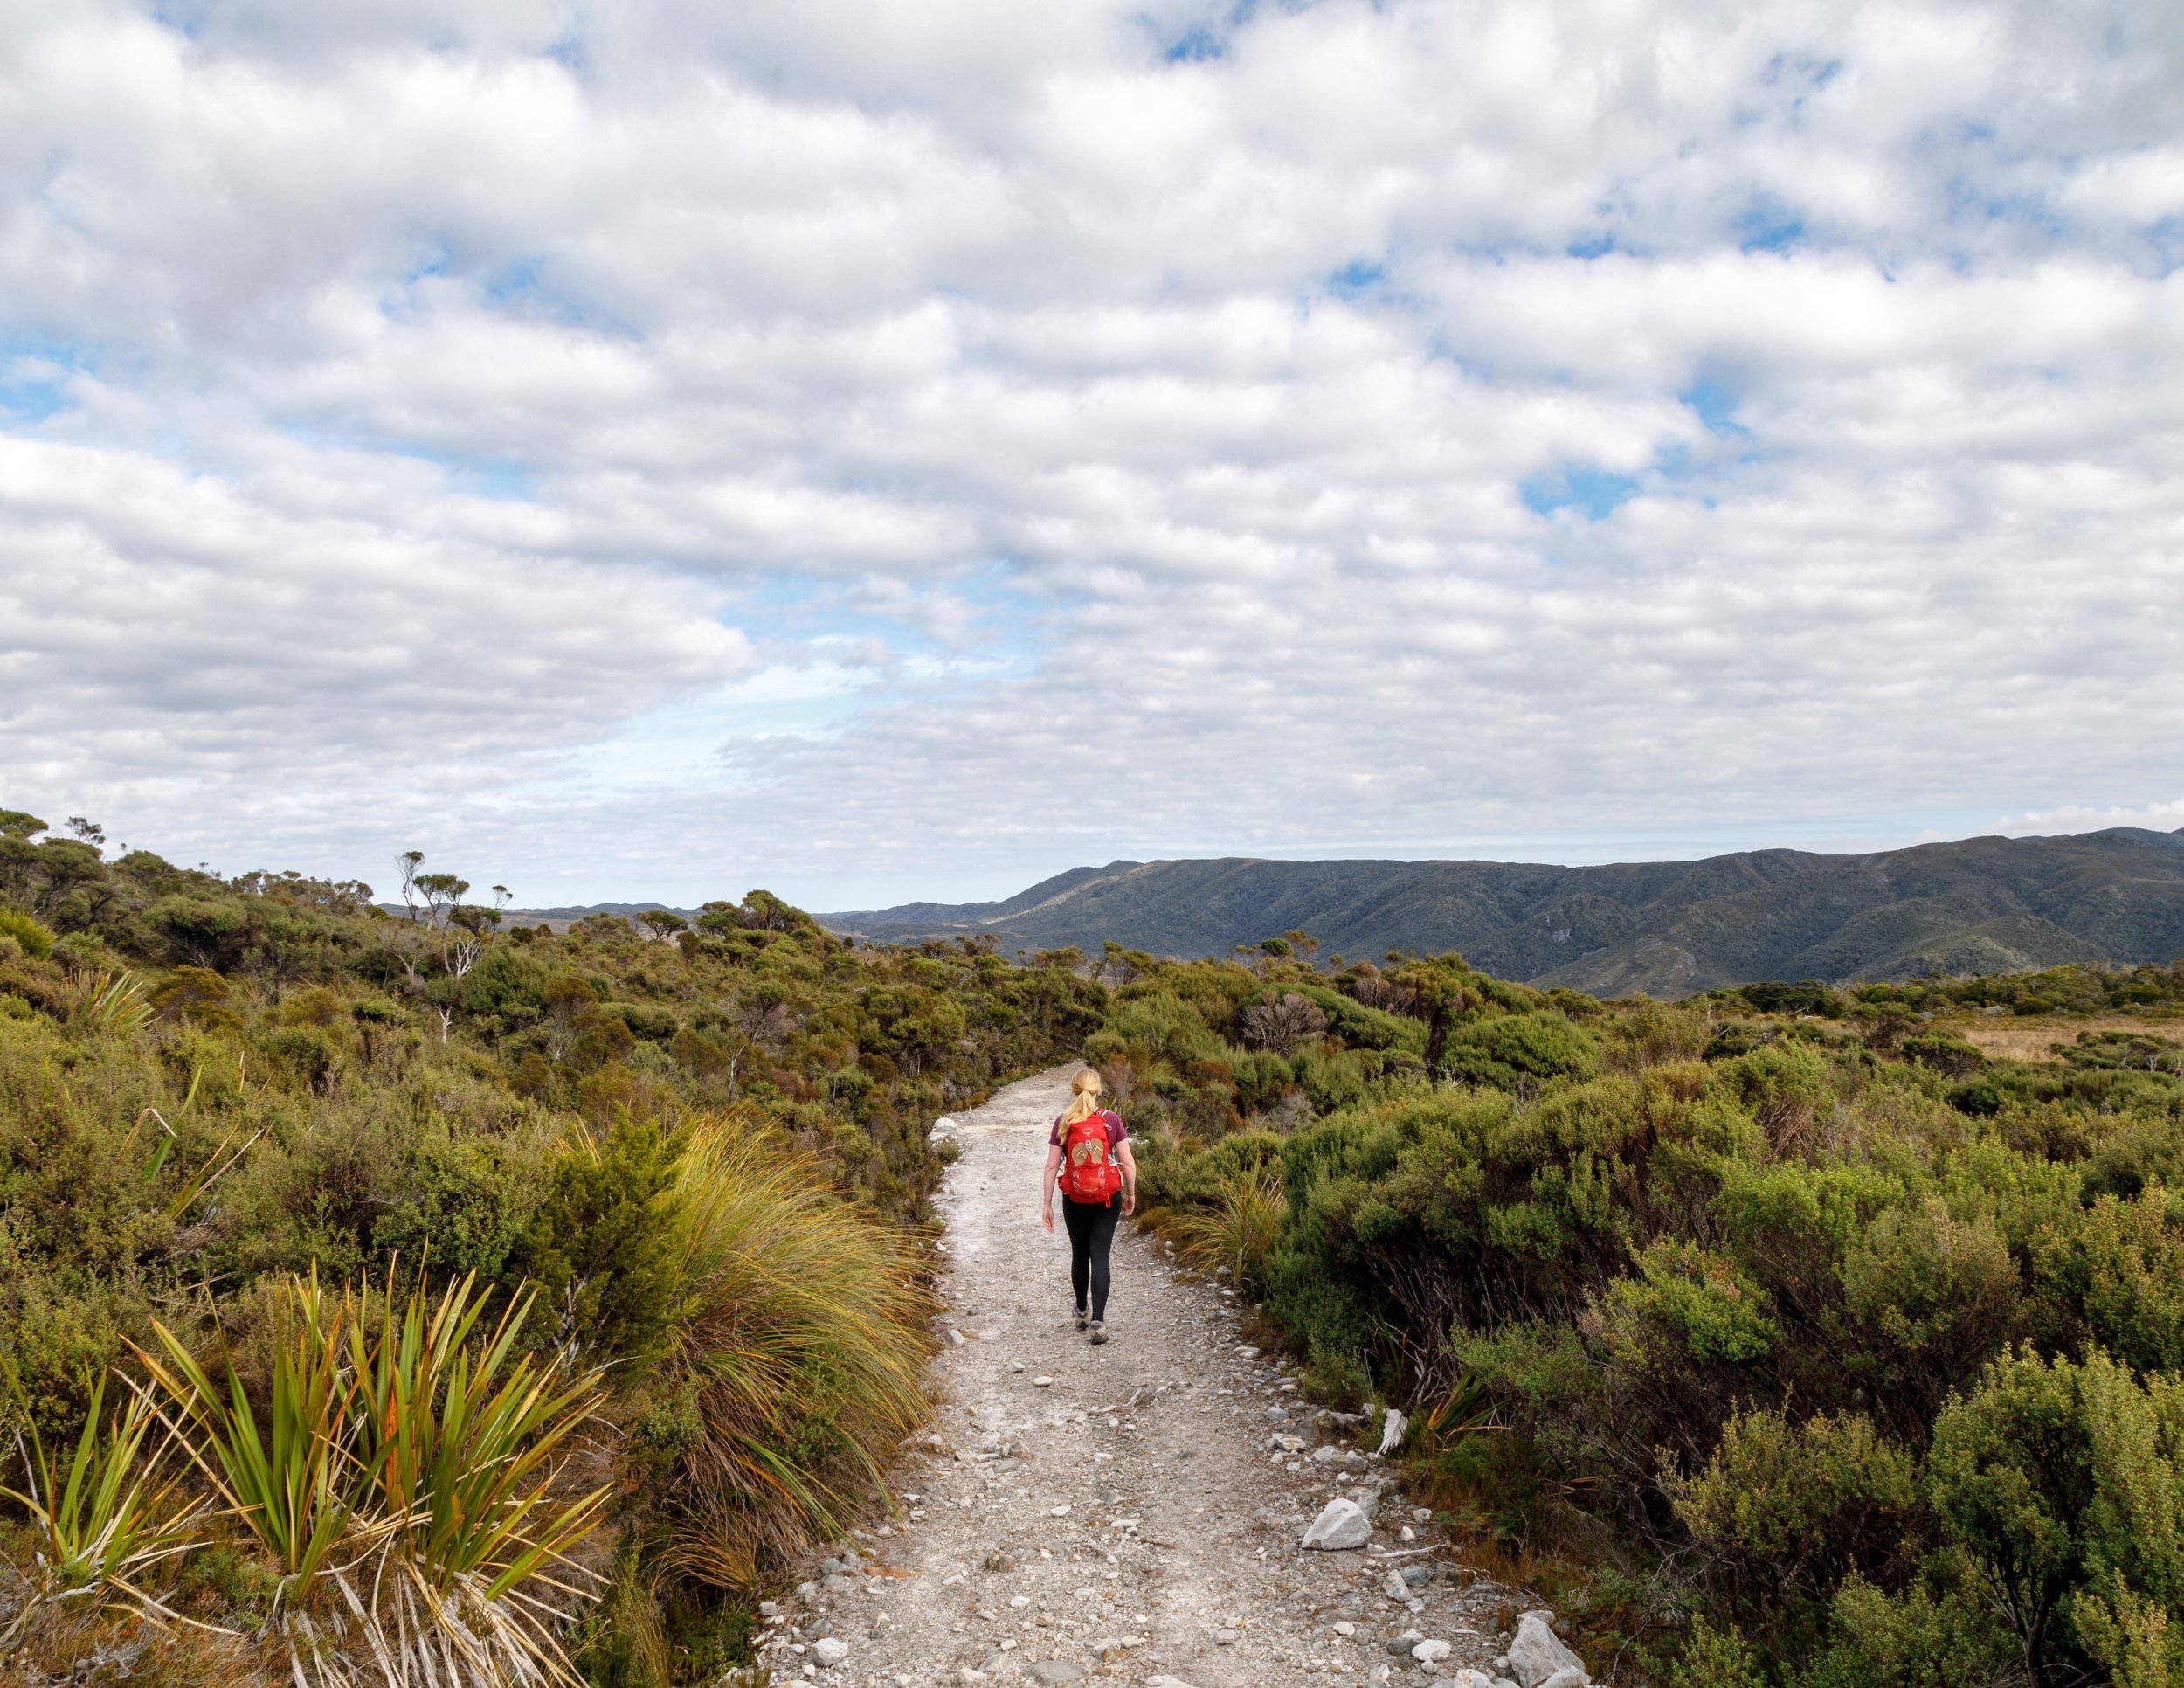 The track to Gouland Downs Hut